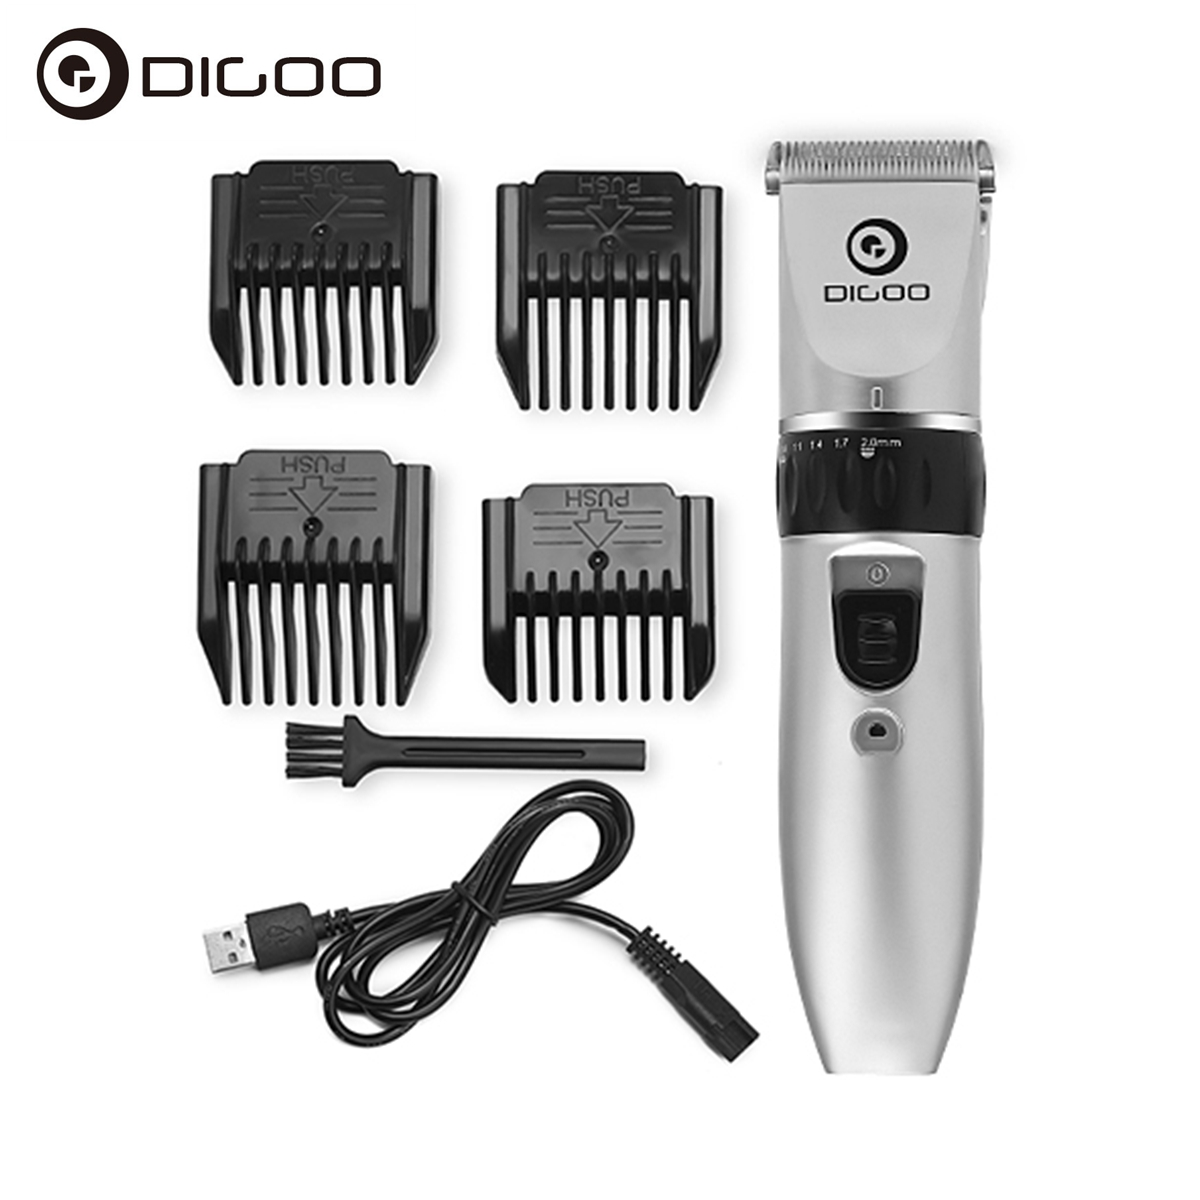 Digoo BB T1 USB Ceramic Hair Trimmer Rechargeable Hair Clipper Smart Home Automation Modules for Children Baby Kids Men Silent